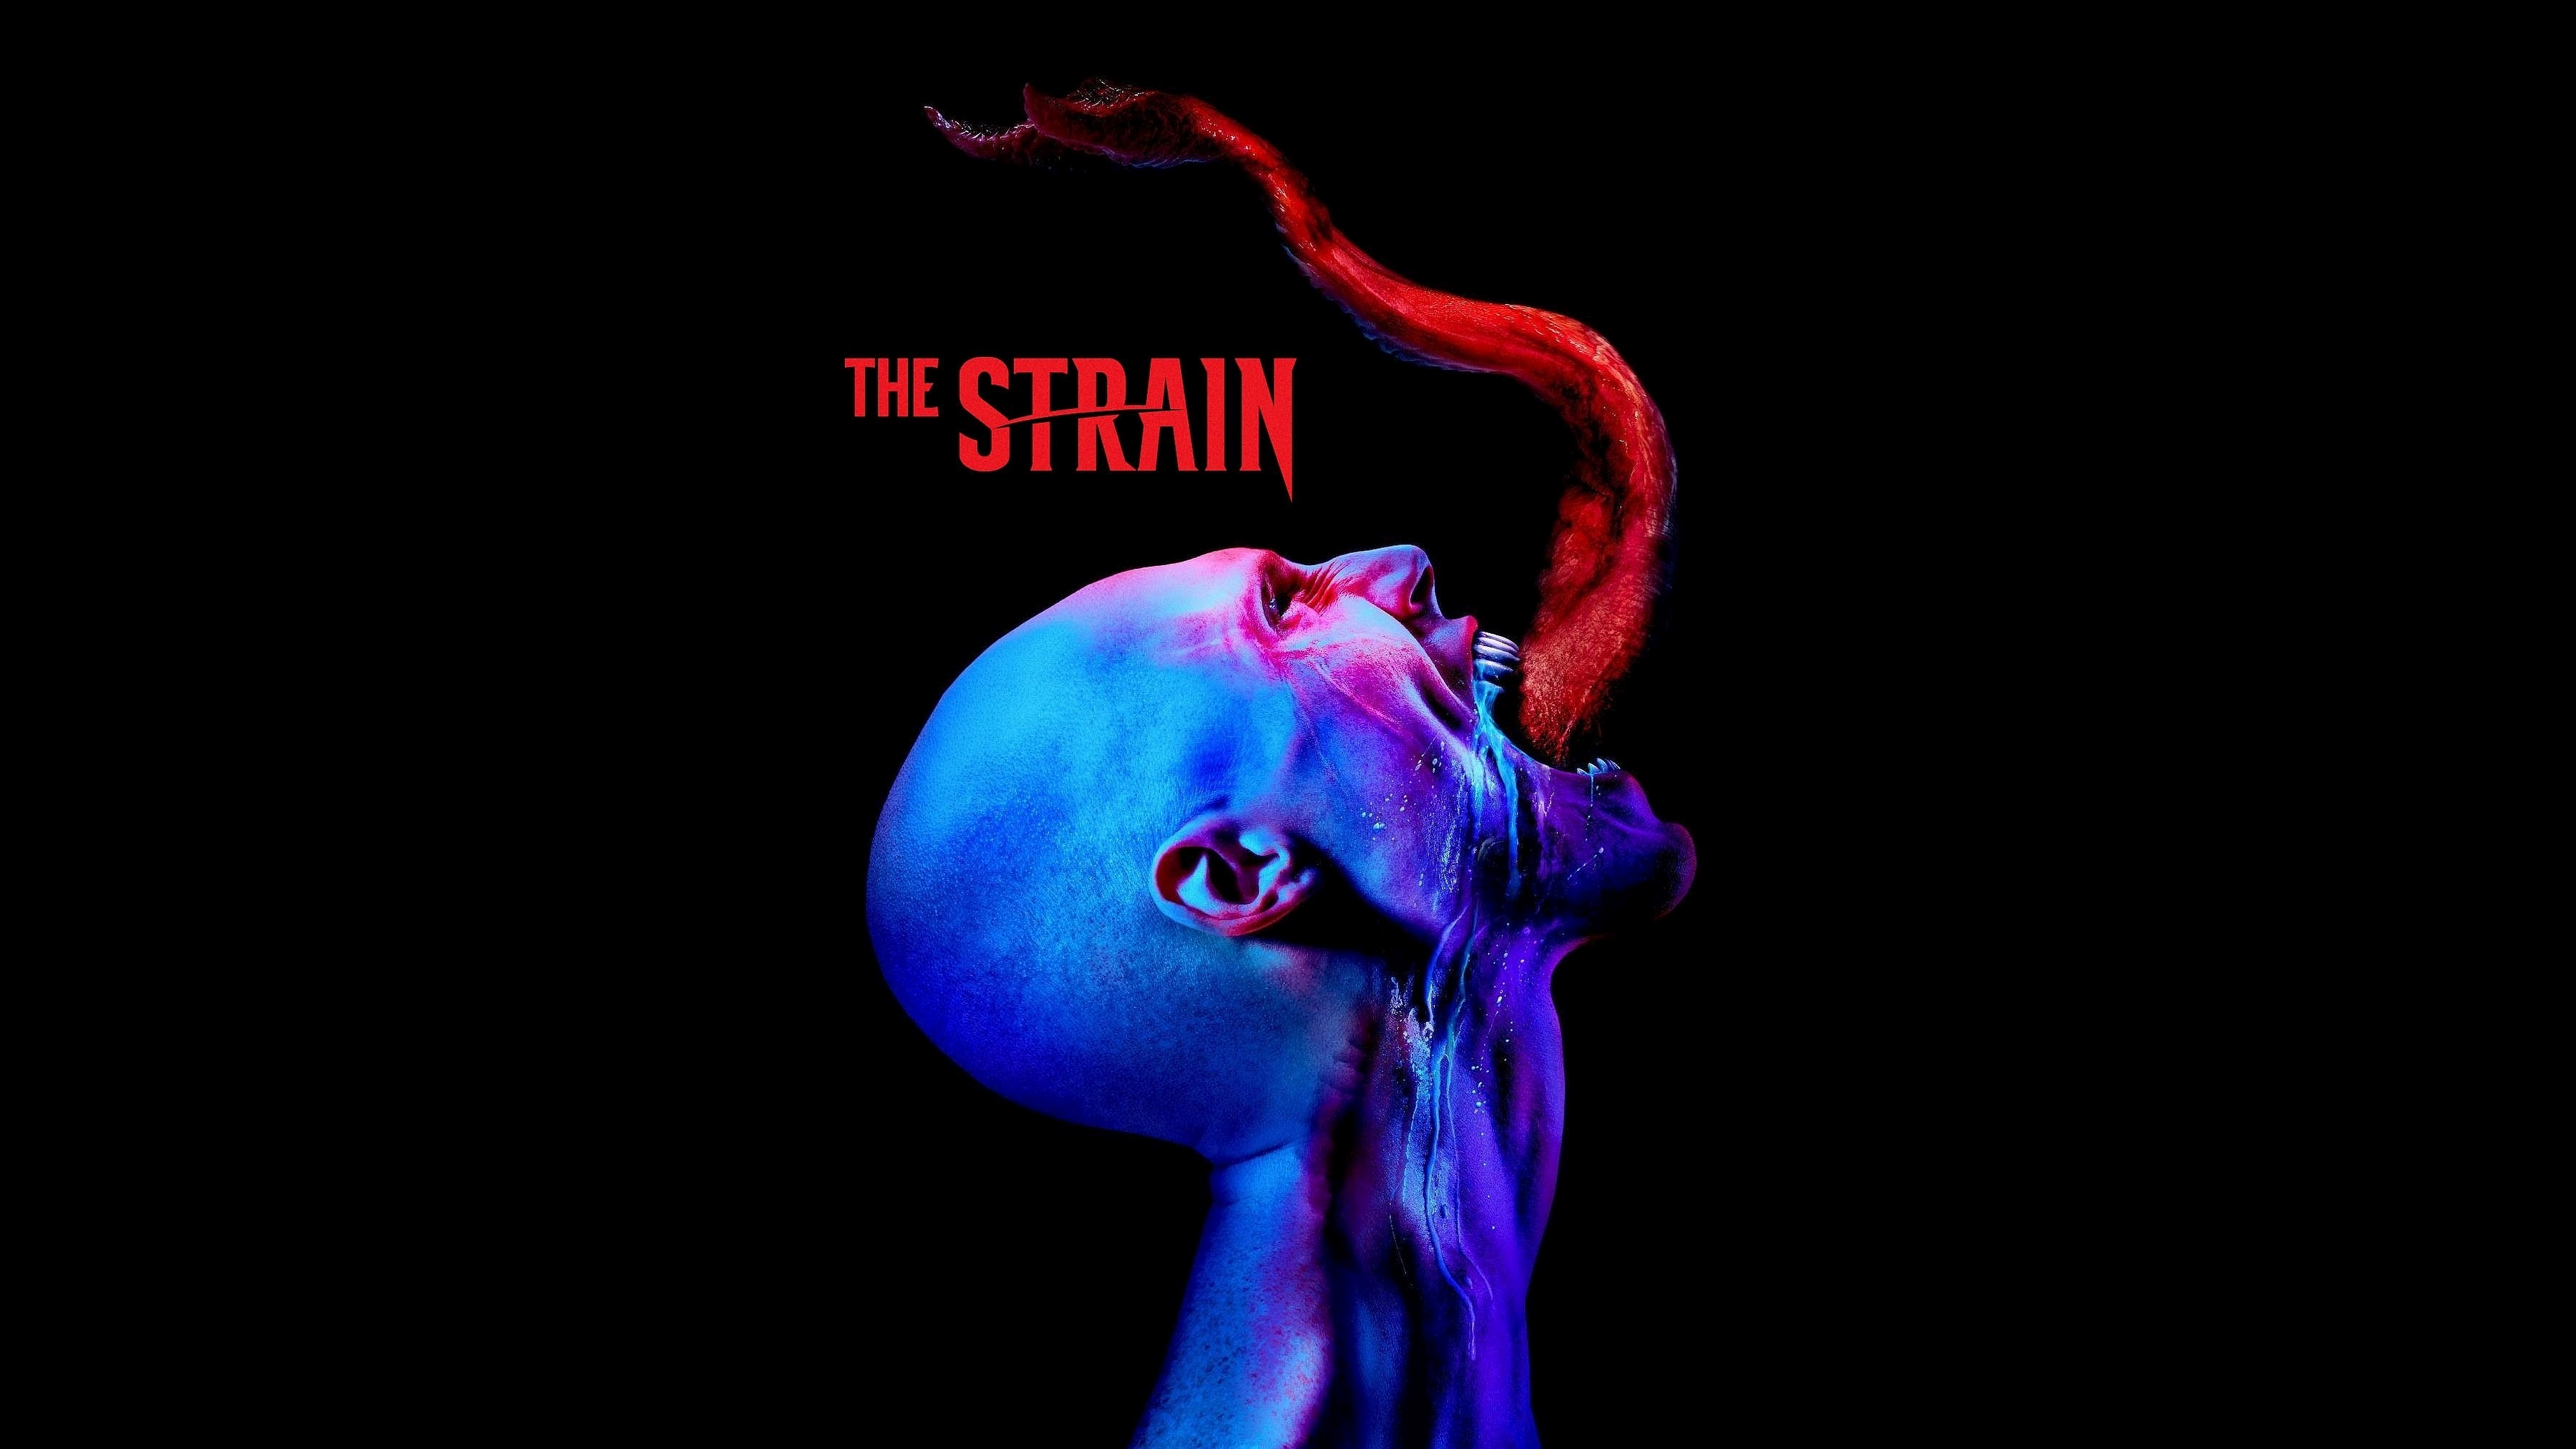 The strain hd wallpaper background image 3600x2025 - Tv series wallpaper 4k ...